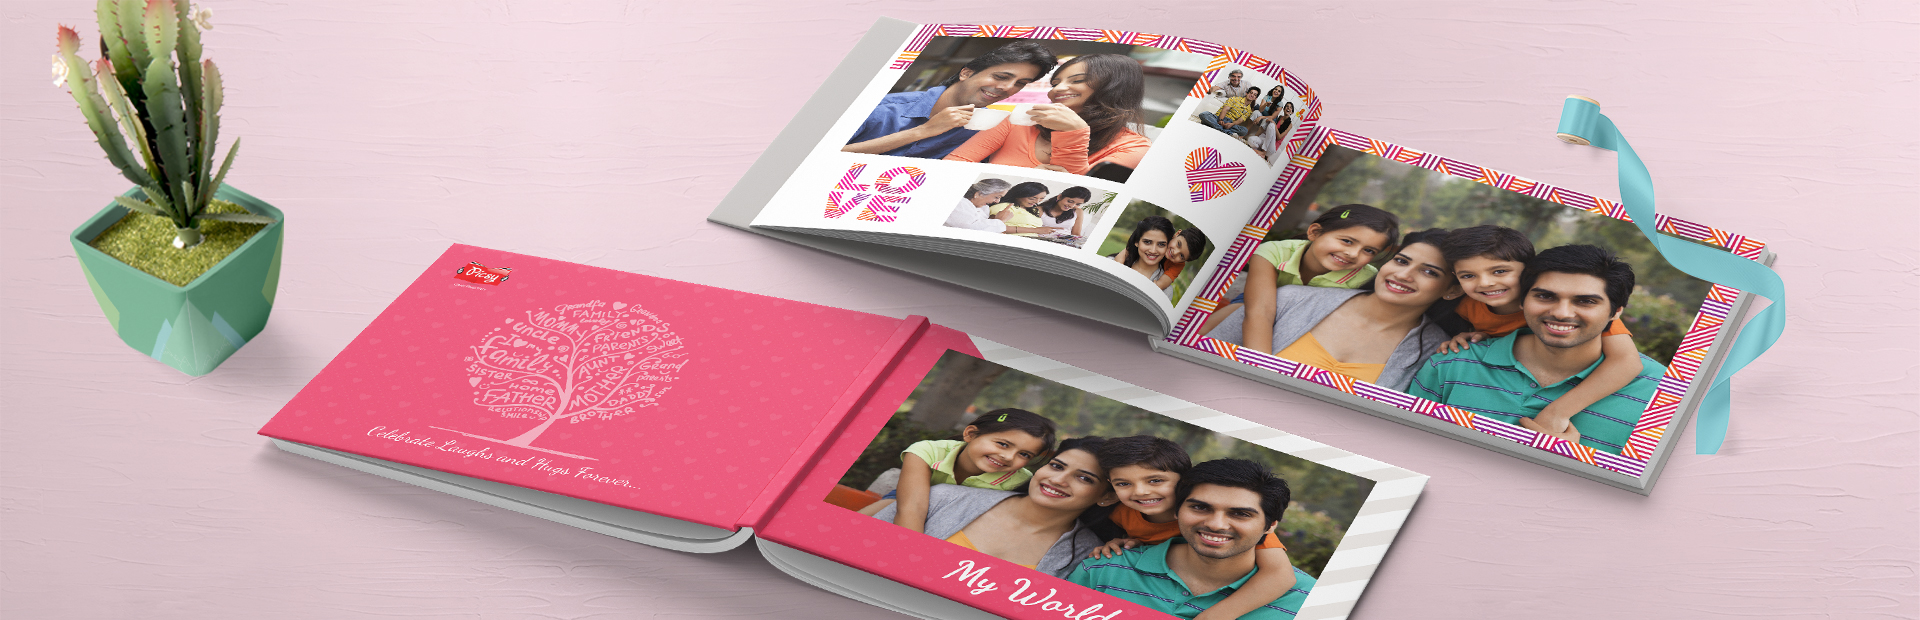 Happy Family Photo Books Online